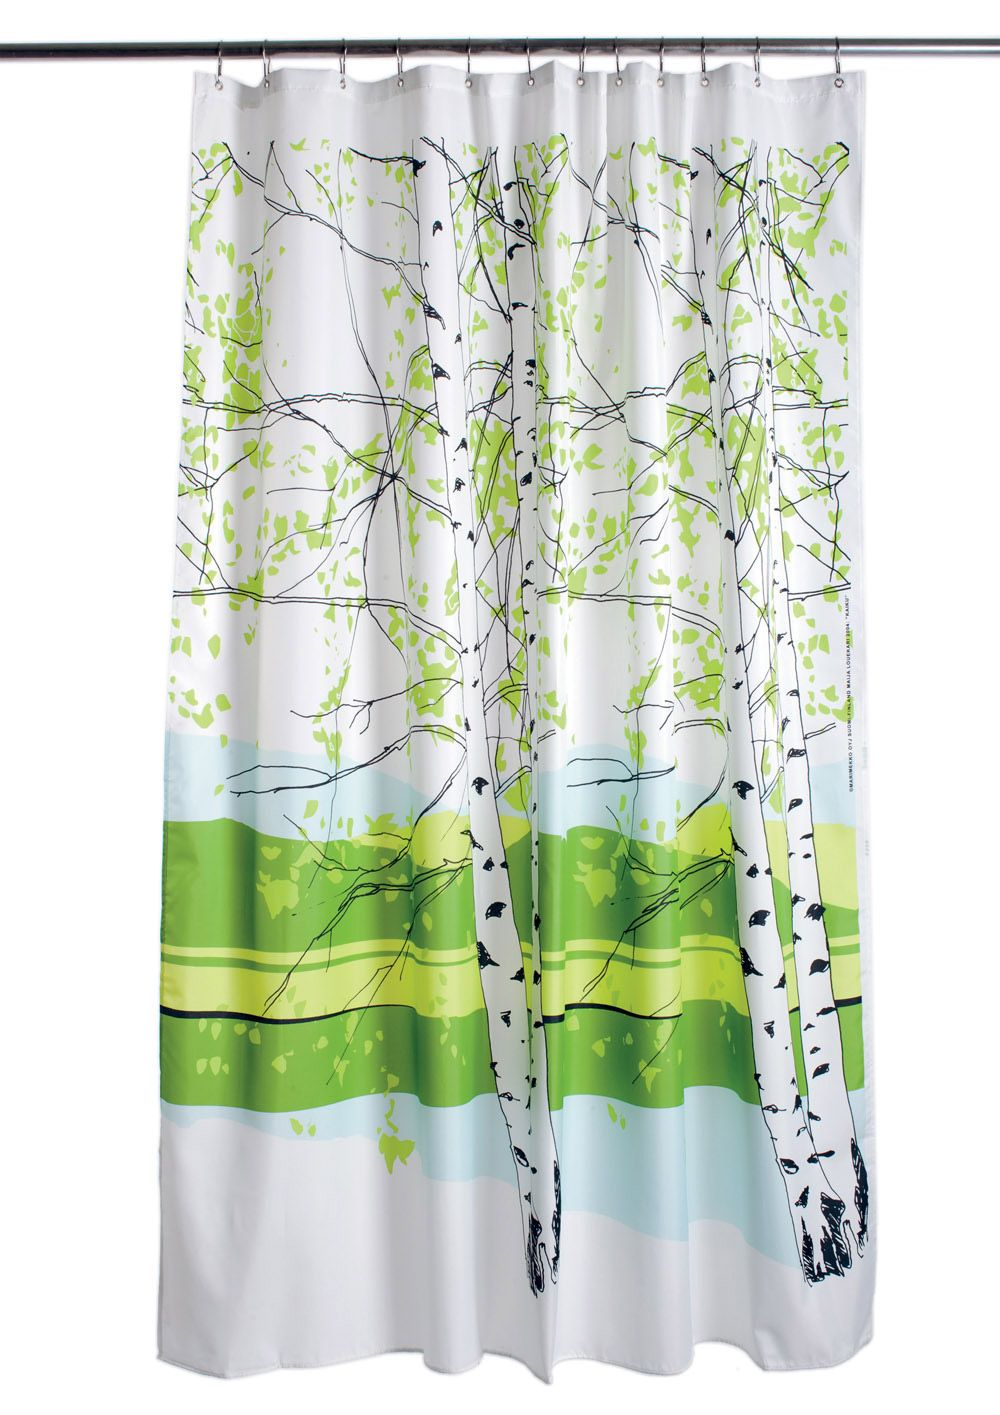 Kaiku Shower Curtain From Marimekko Marimekko Shower Curtain